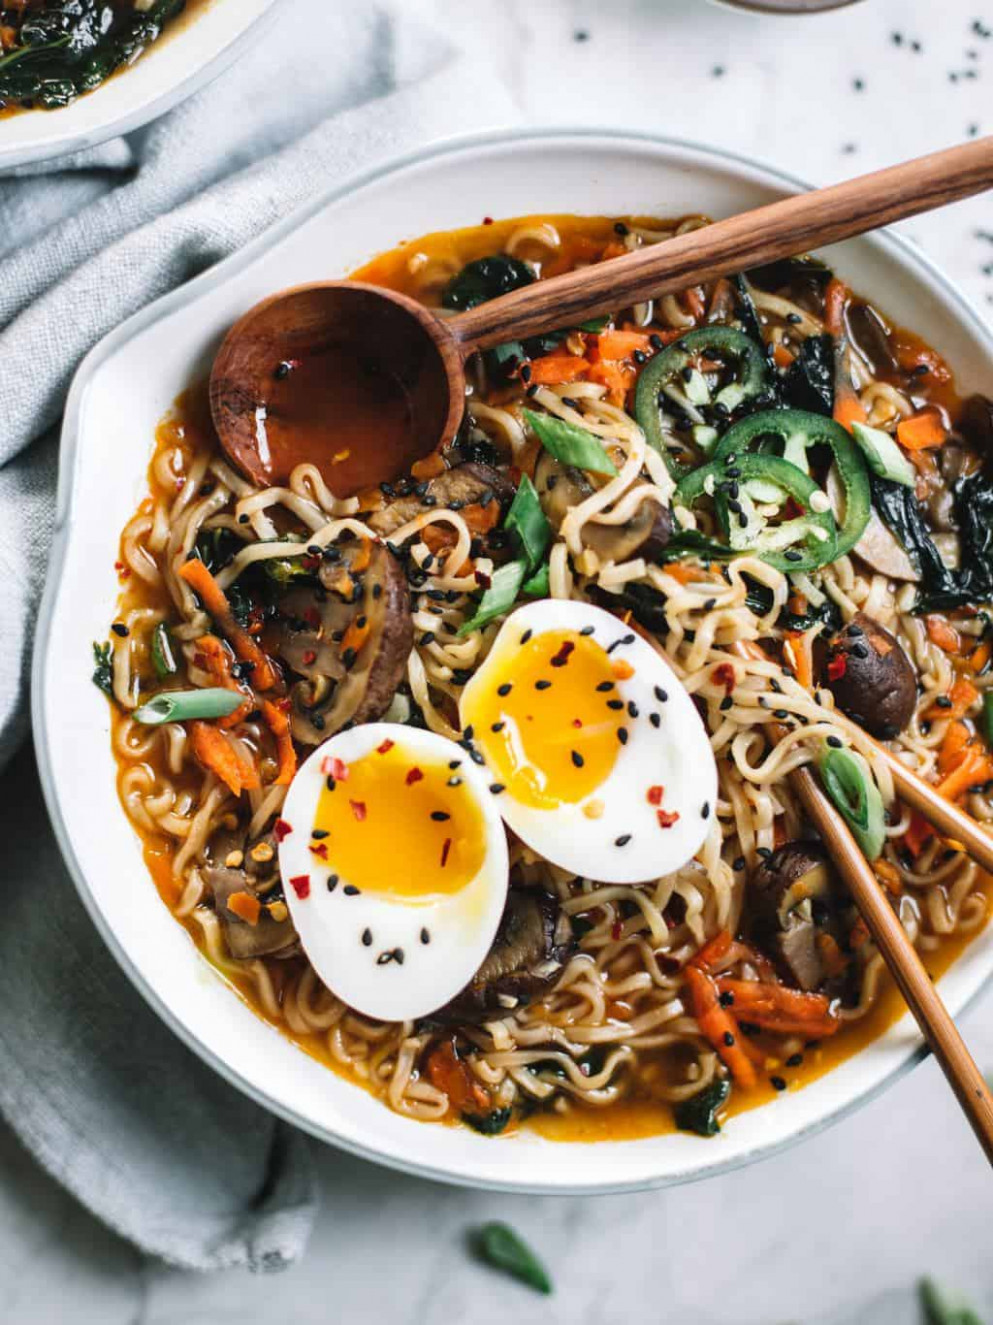 Easy Homemade Healthy Ramen Bowls - College Housewife - healthy ramen recipes